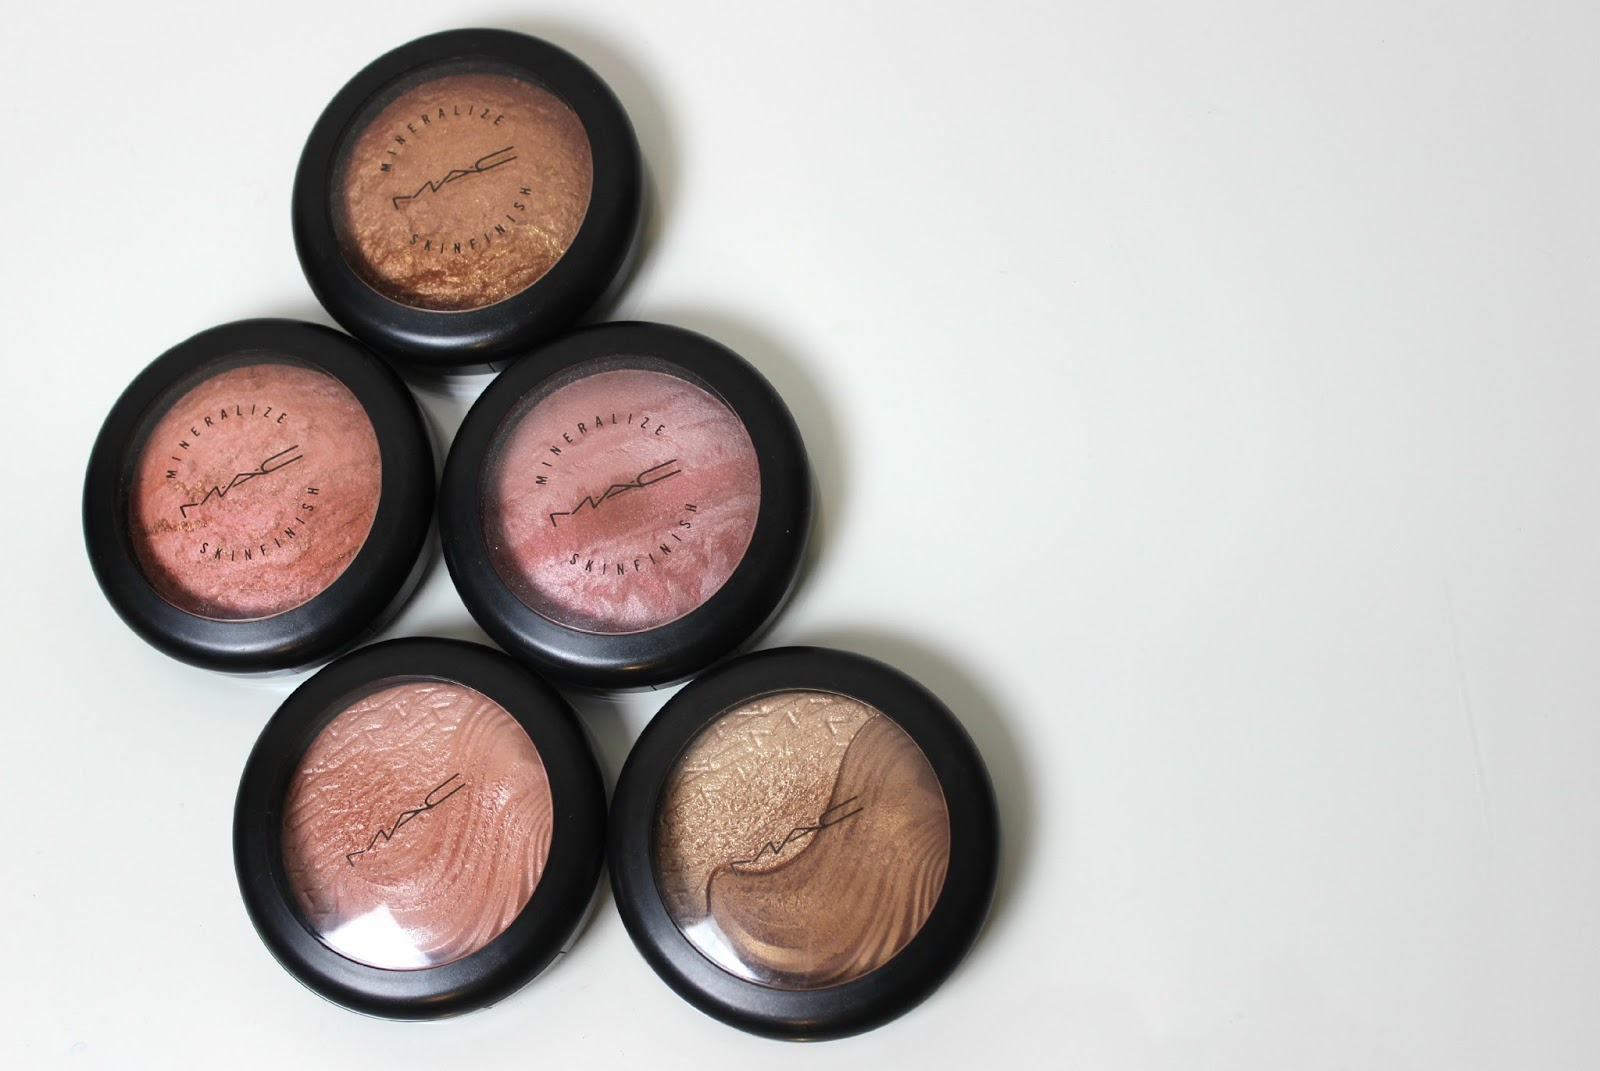 A picture of MAC Mineralize Skinfinish